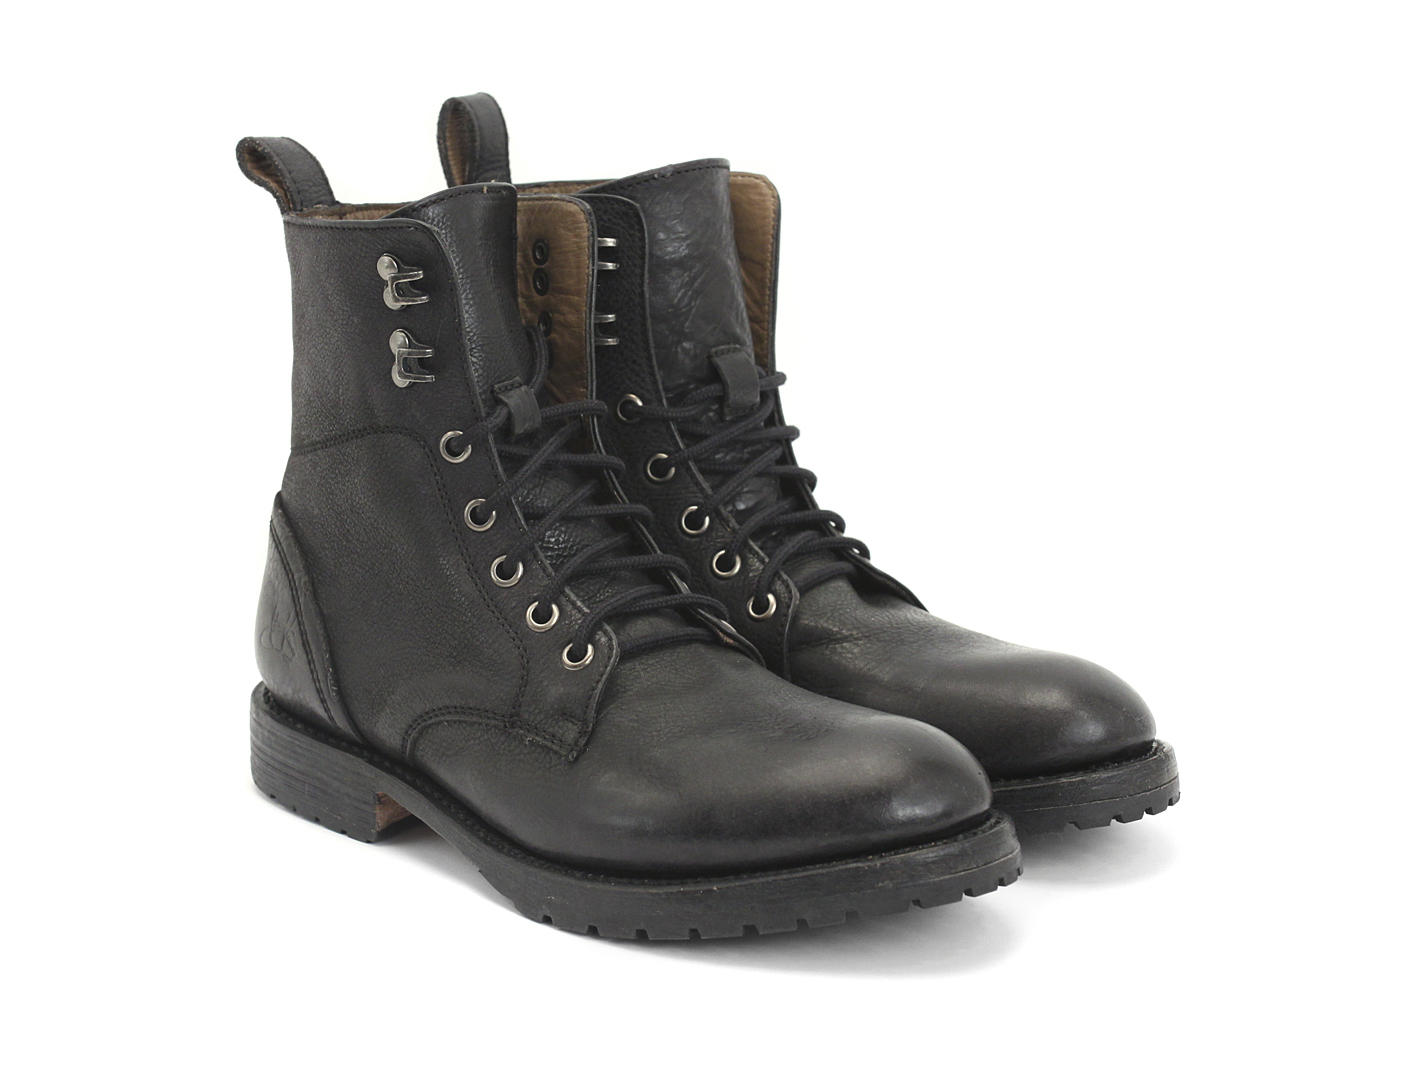 Toronto Shoe Store White Lace Up Boots